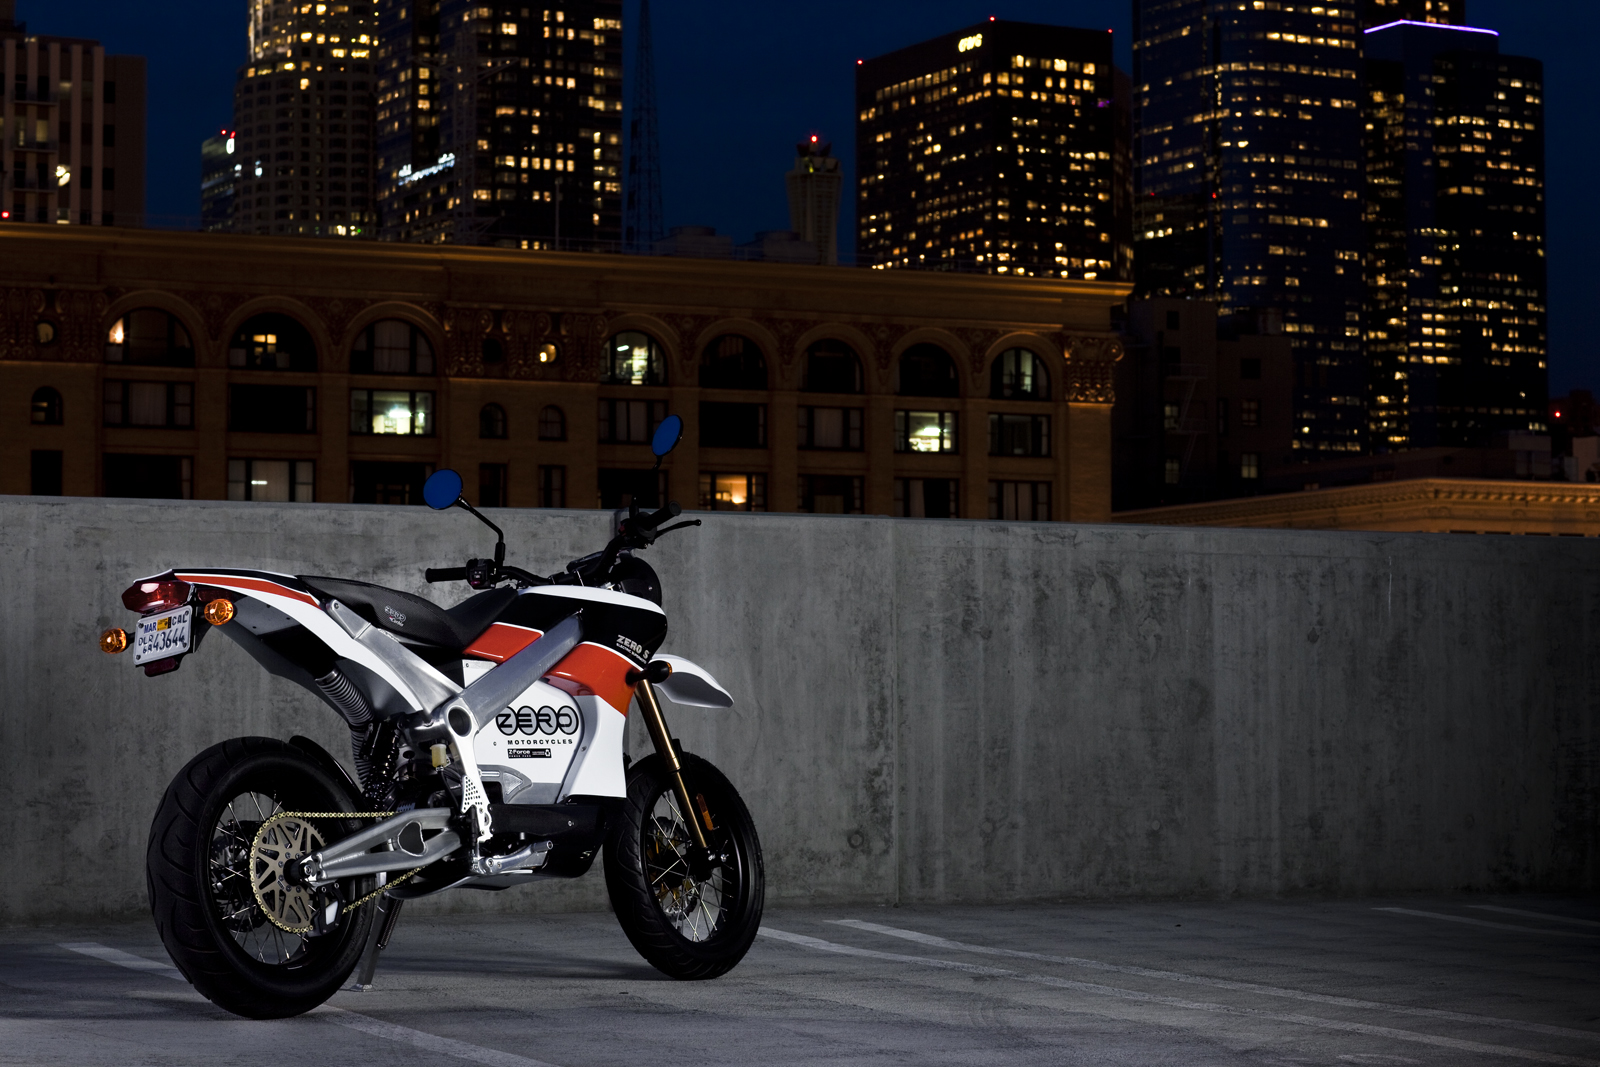 2010 Zero S Electric Motorcycle: Los Angeles - City Lights Back